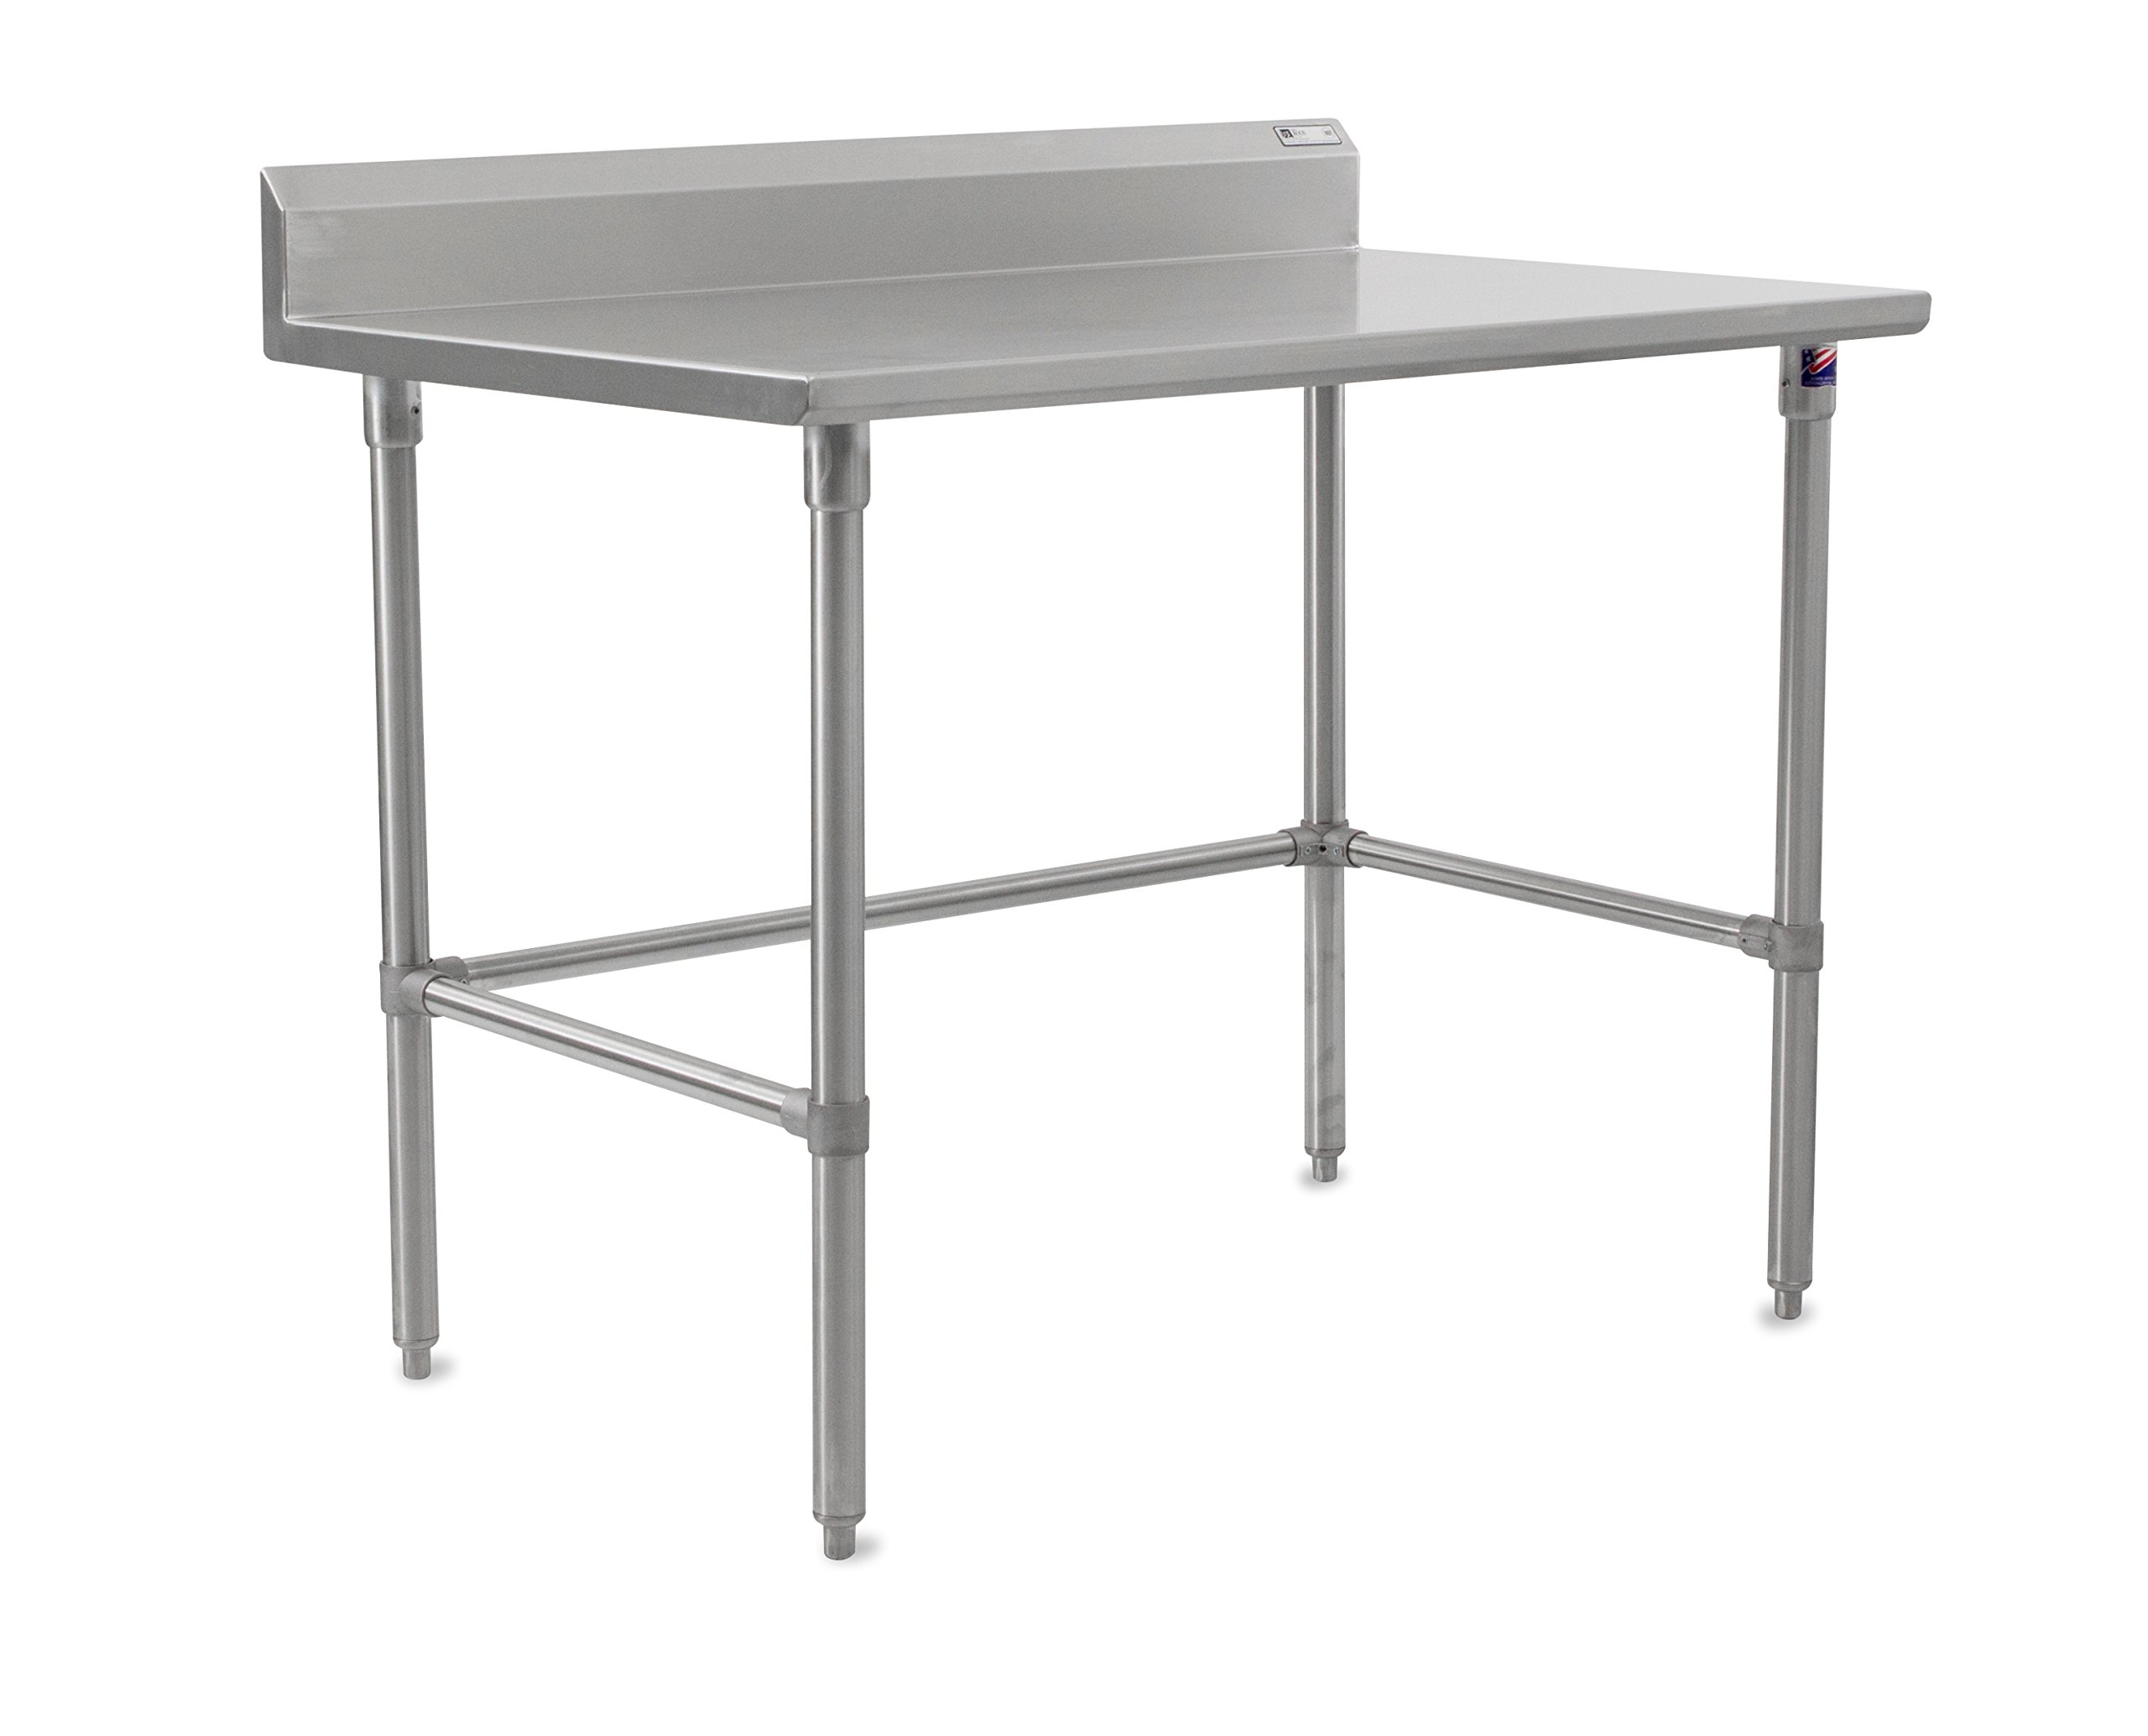 John Boos Stallion ST6R5-3060SBK Stainless Steel 5'' Riser Top Work Table with Adjustable Stainless Steel Legs and Bracing, 60'' Length x 30'' Width